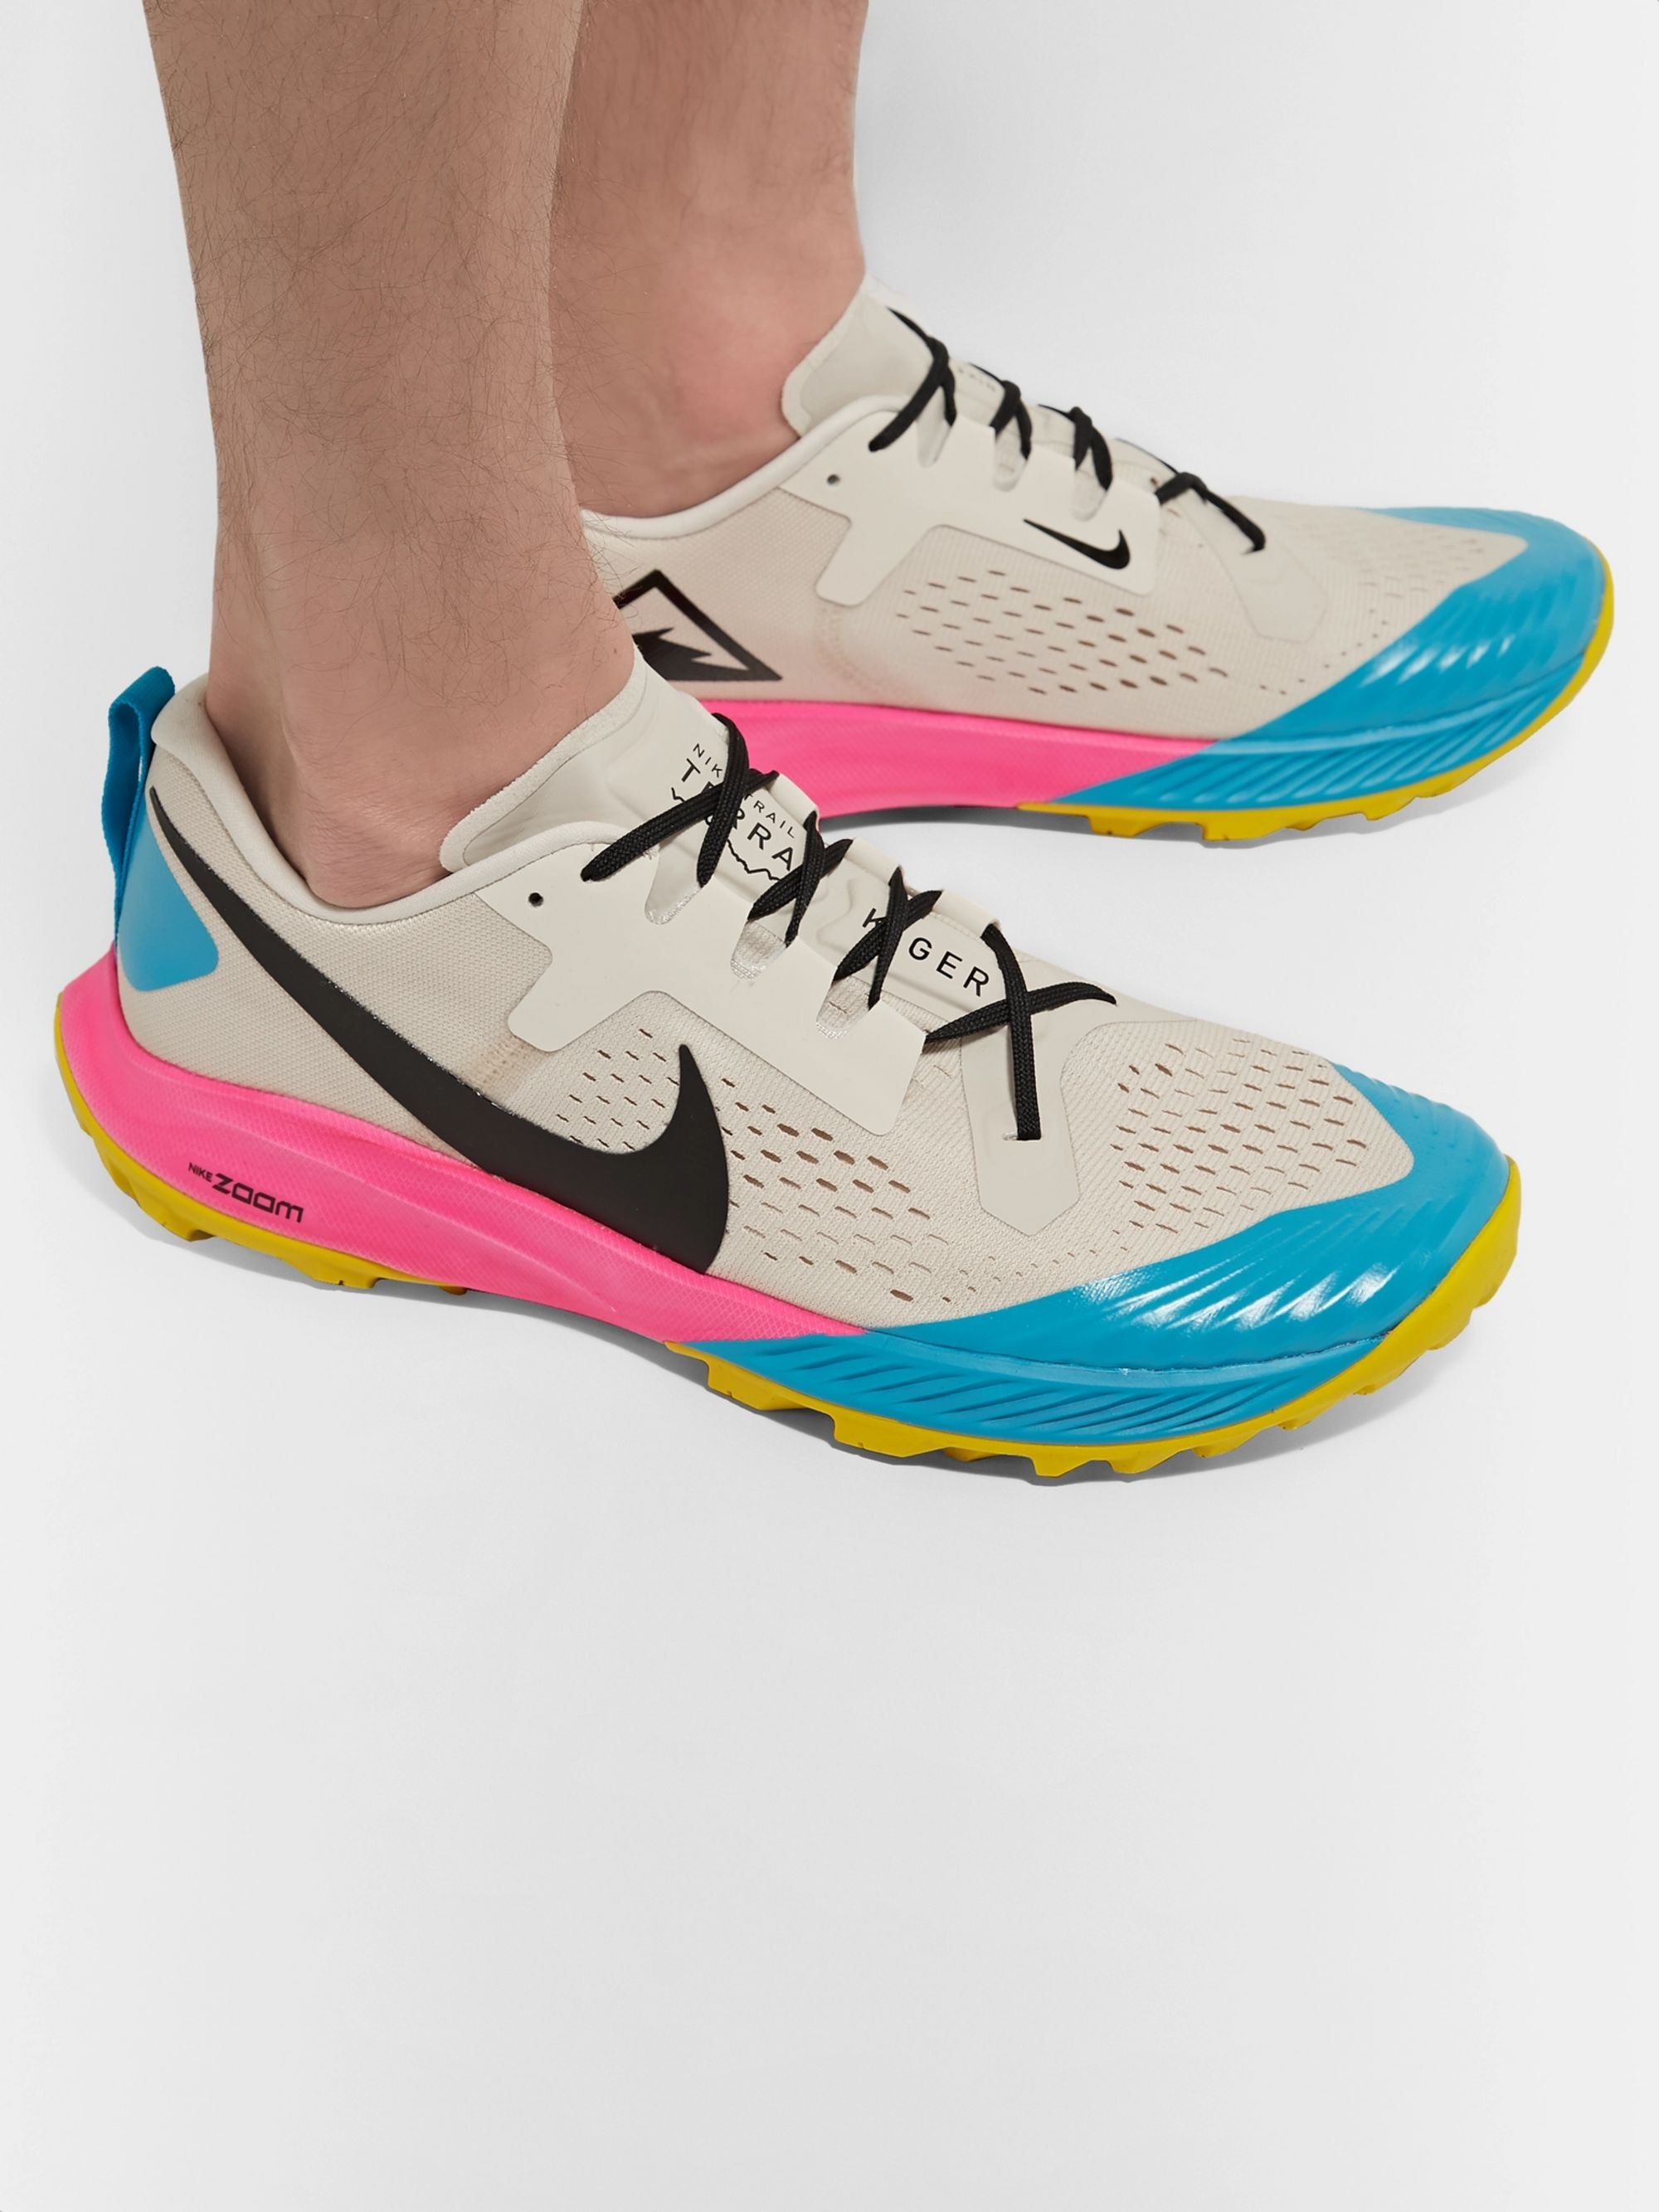 latest trends of 2019 50% price latest fashion Air Zoom Terra Kiger 5 Flymesh Running Sneakers